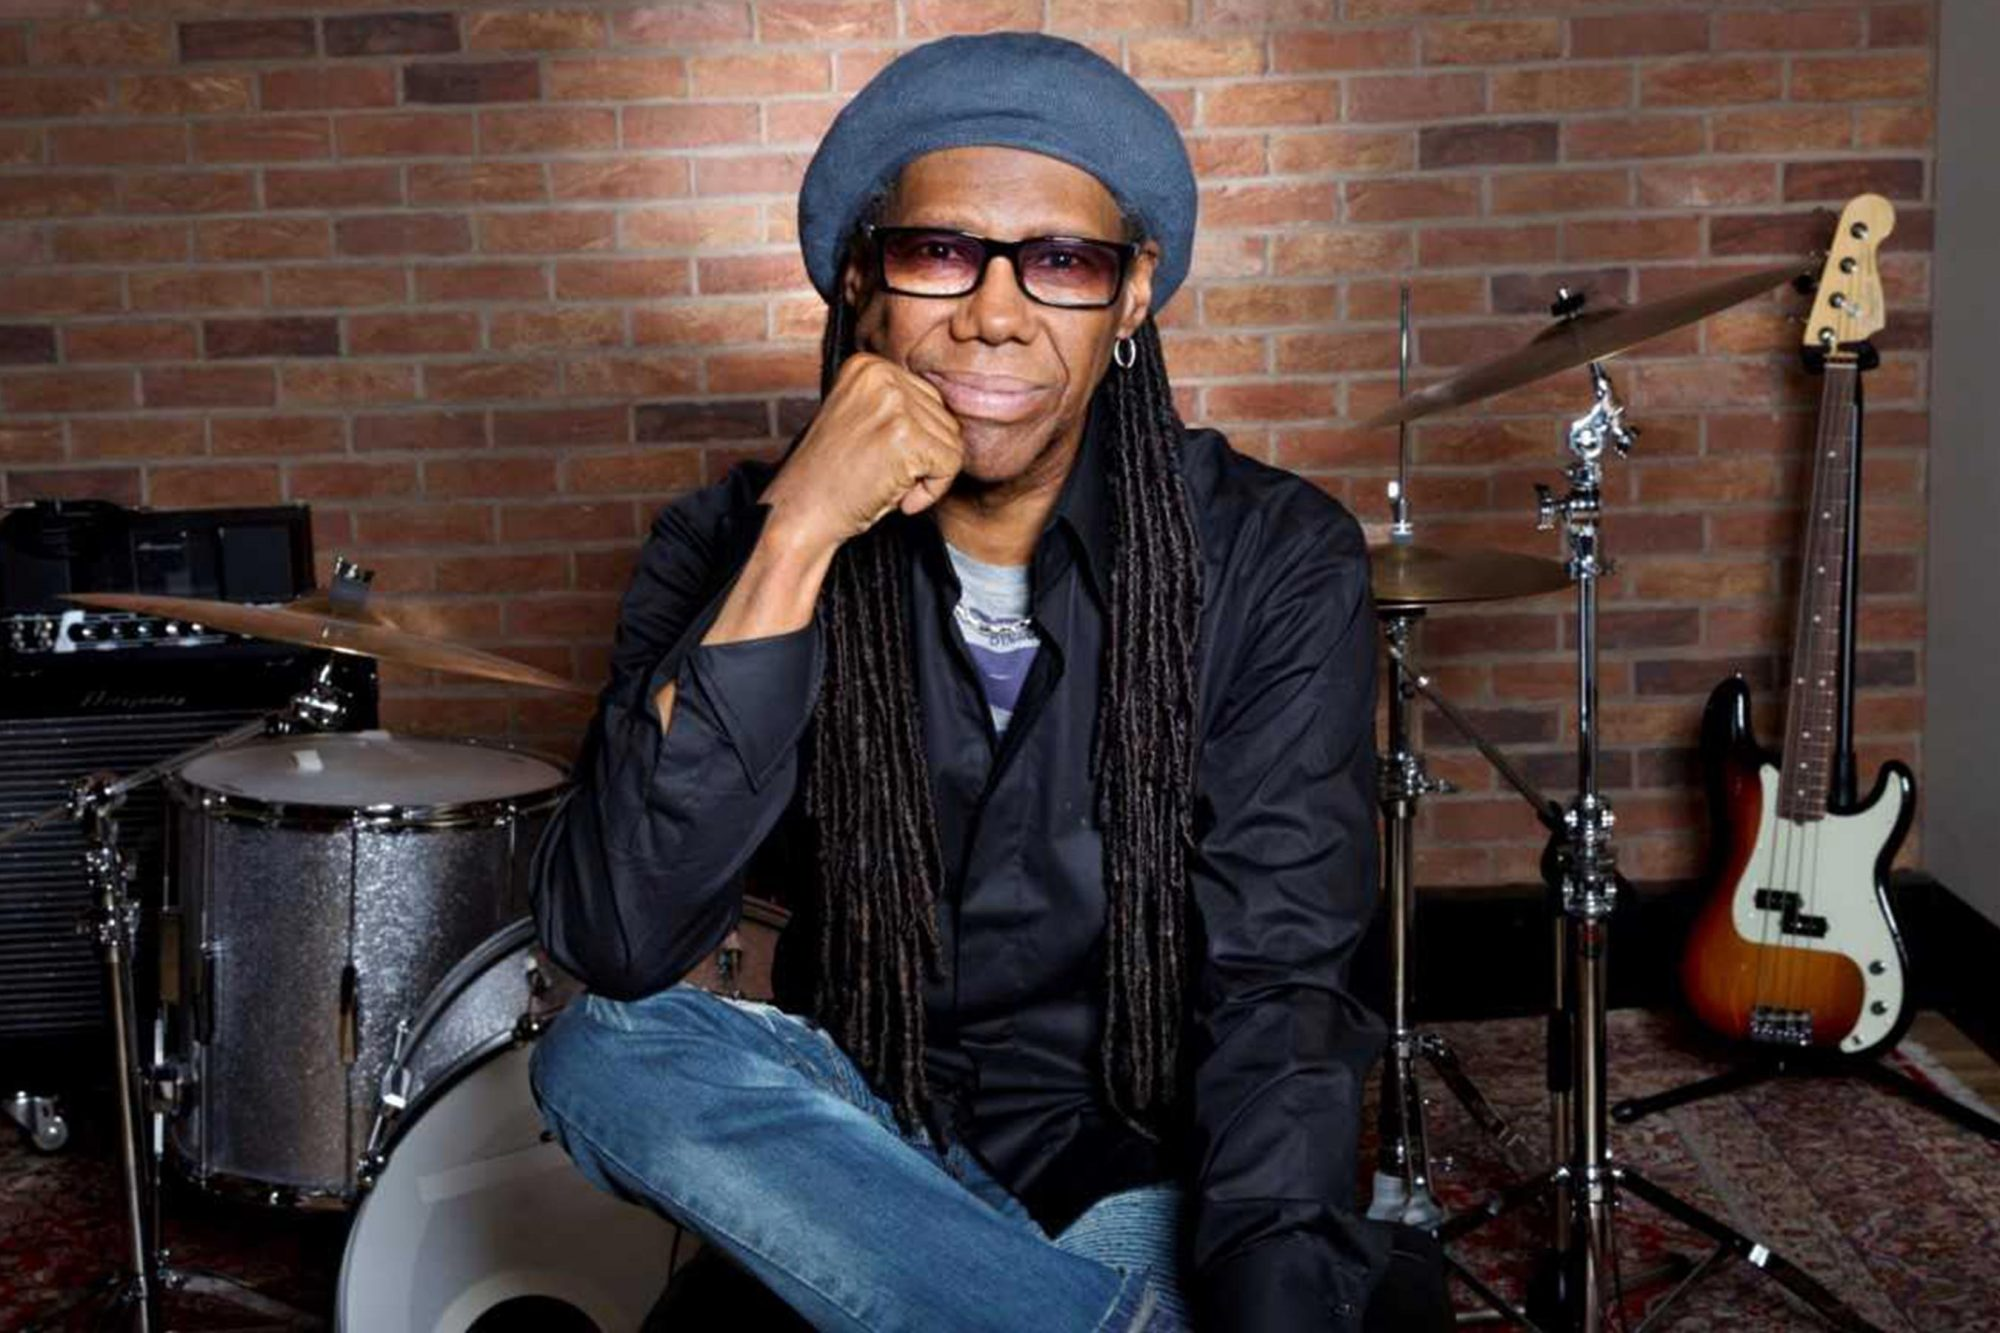 Nile Rodgers's legacy spans far and wide